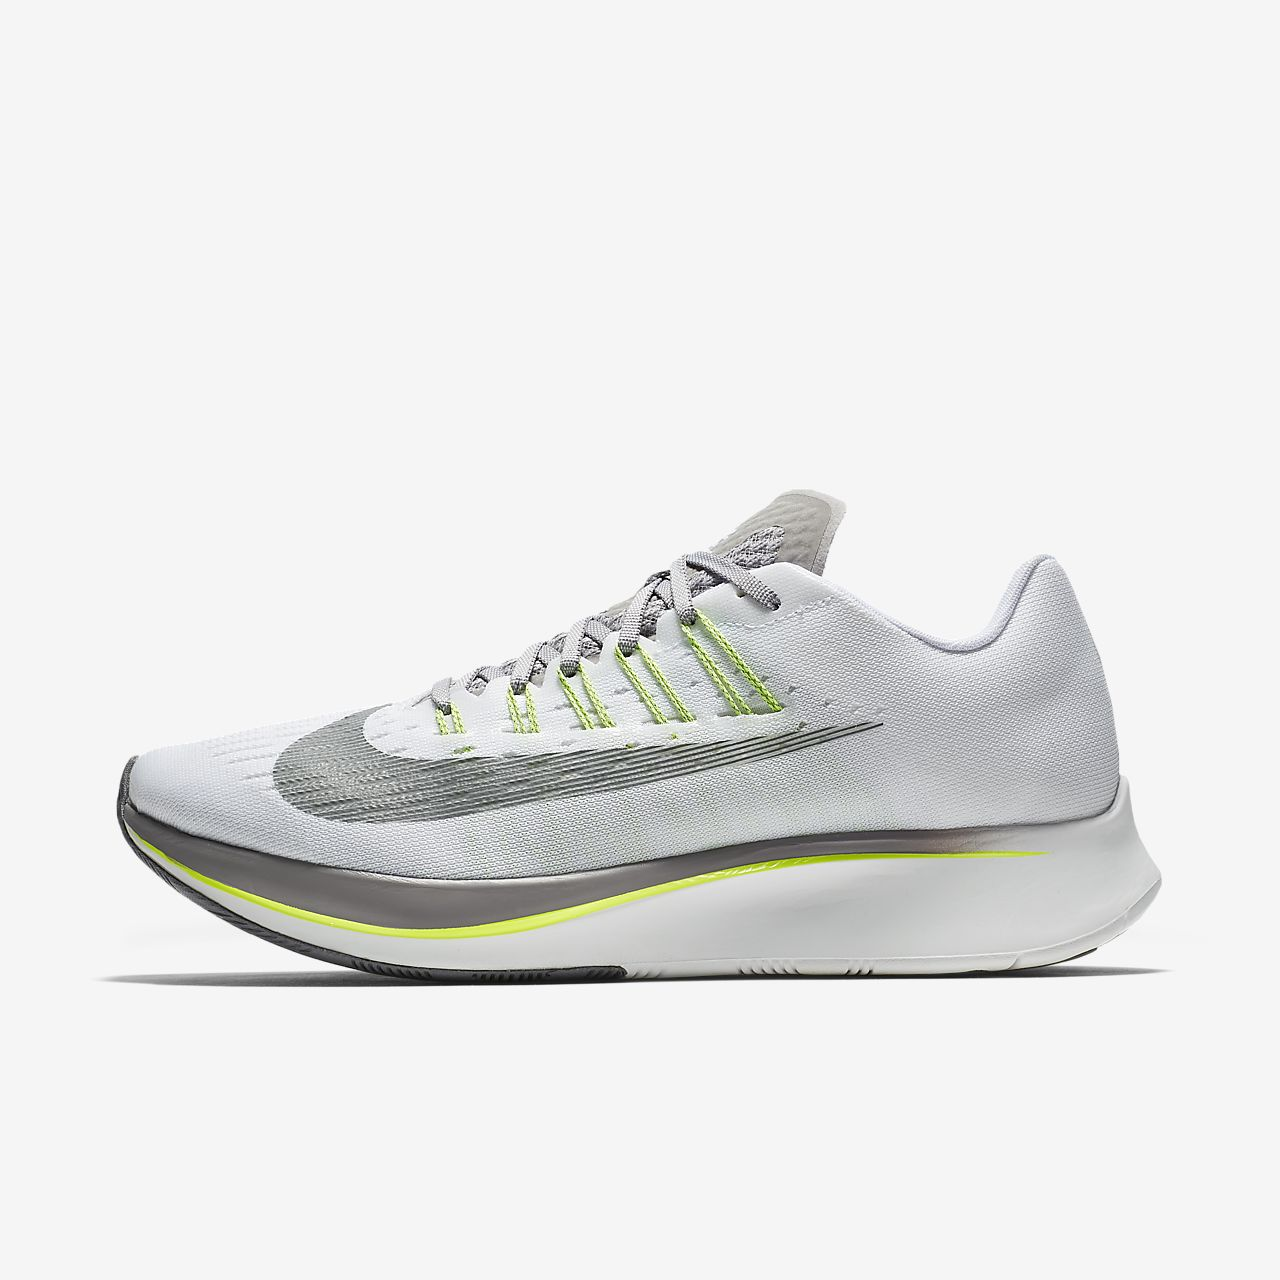 separation shoes e0df9 b32d3 ... Nike Zoom Fly Mens Running Shoe